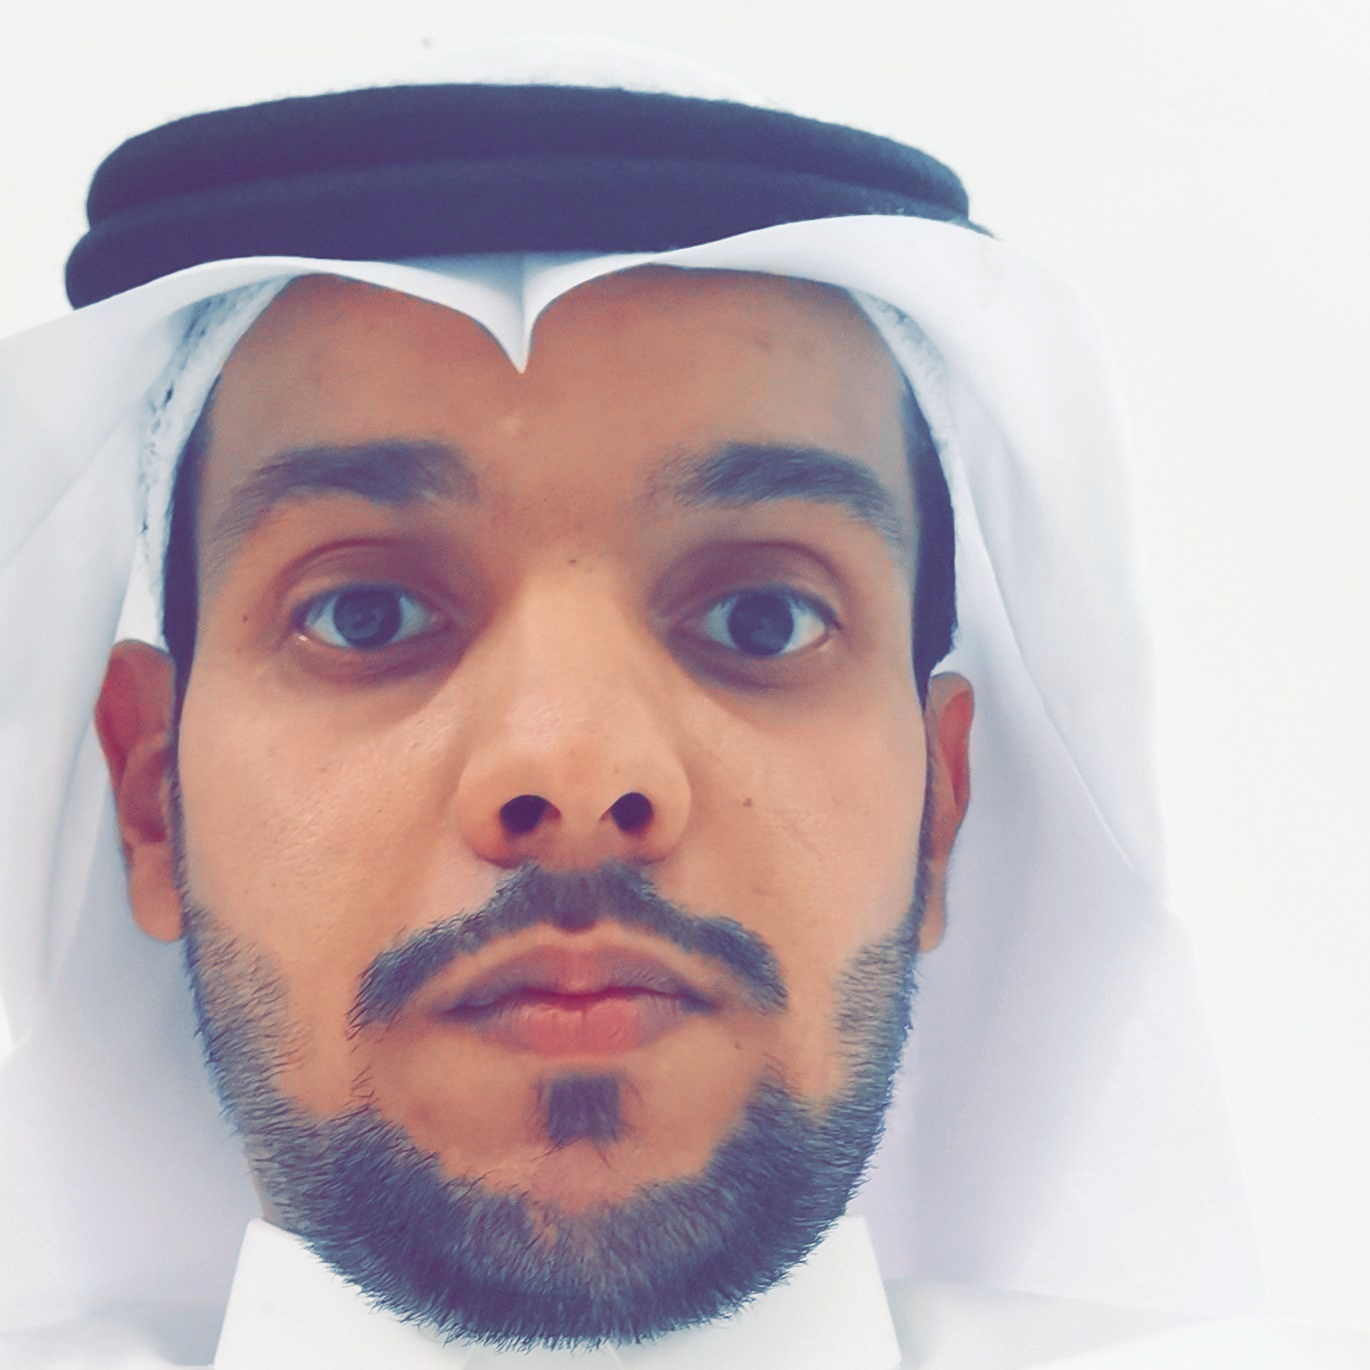 Aghlaalhbaib Profile Picture